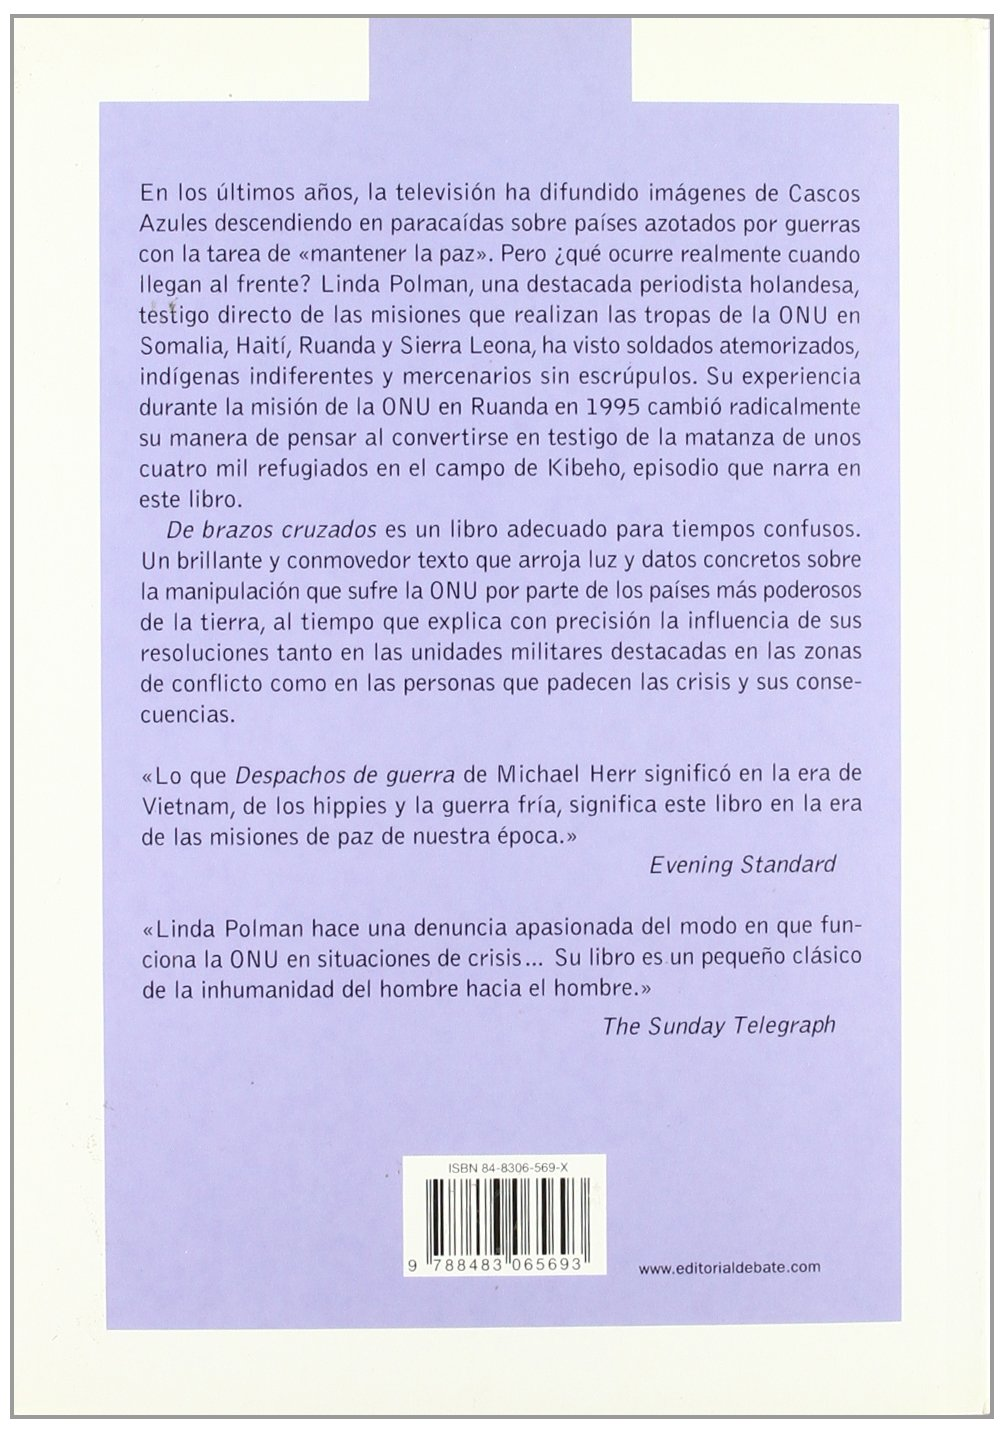 Amazon.com: De brazos cruzados / We Did Nothing (Arena Abierta) (Spanish Edition) (9788483065693): Linda Polman: Books